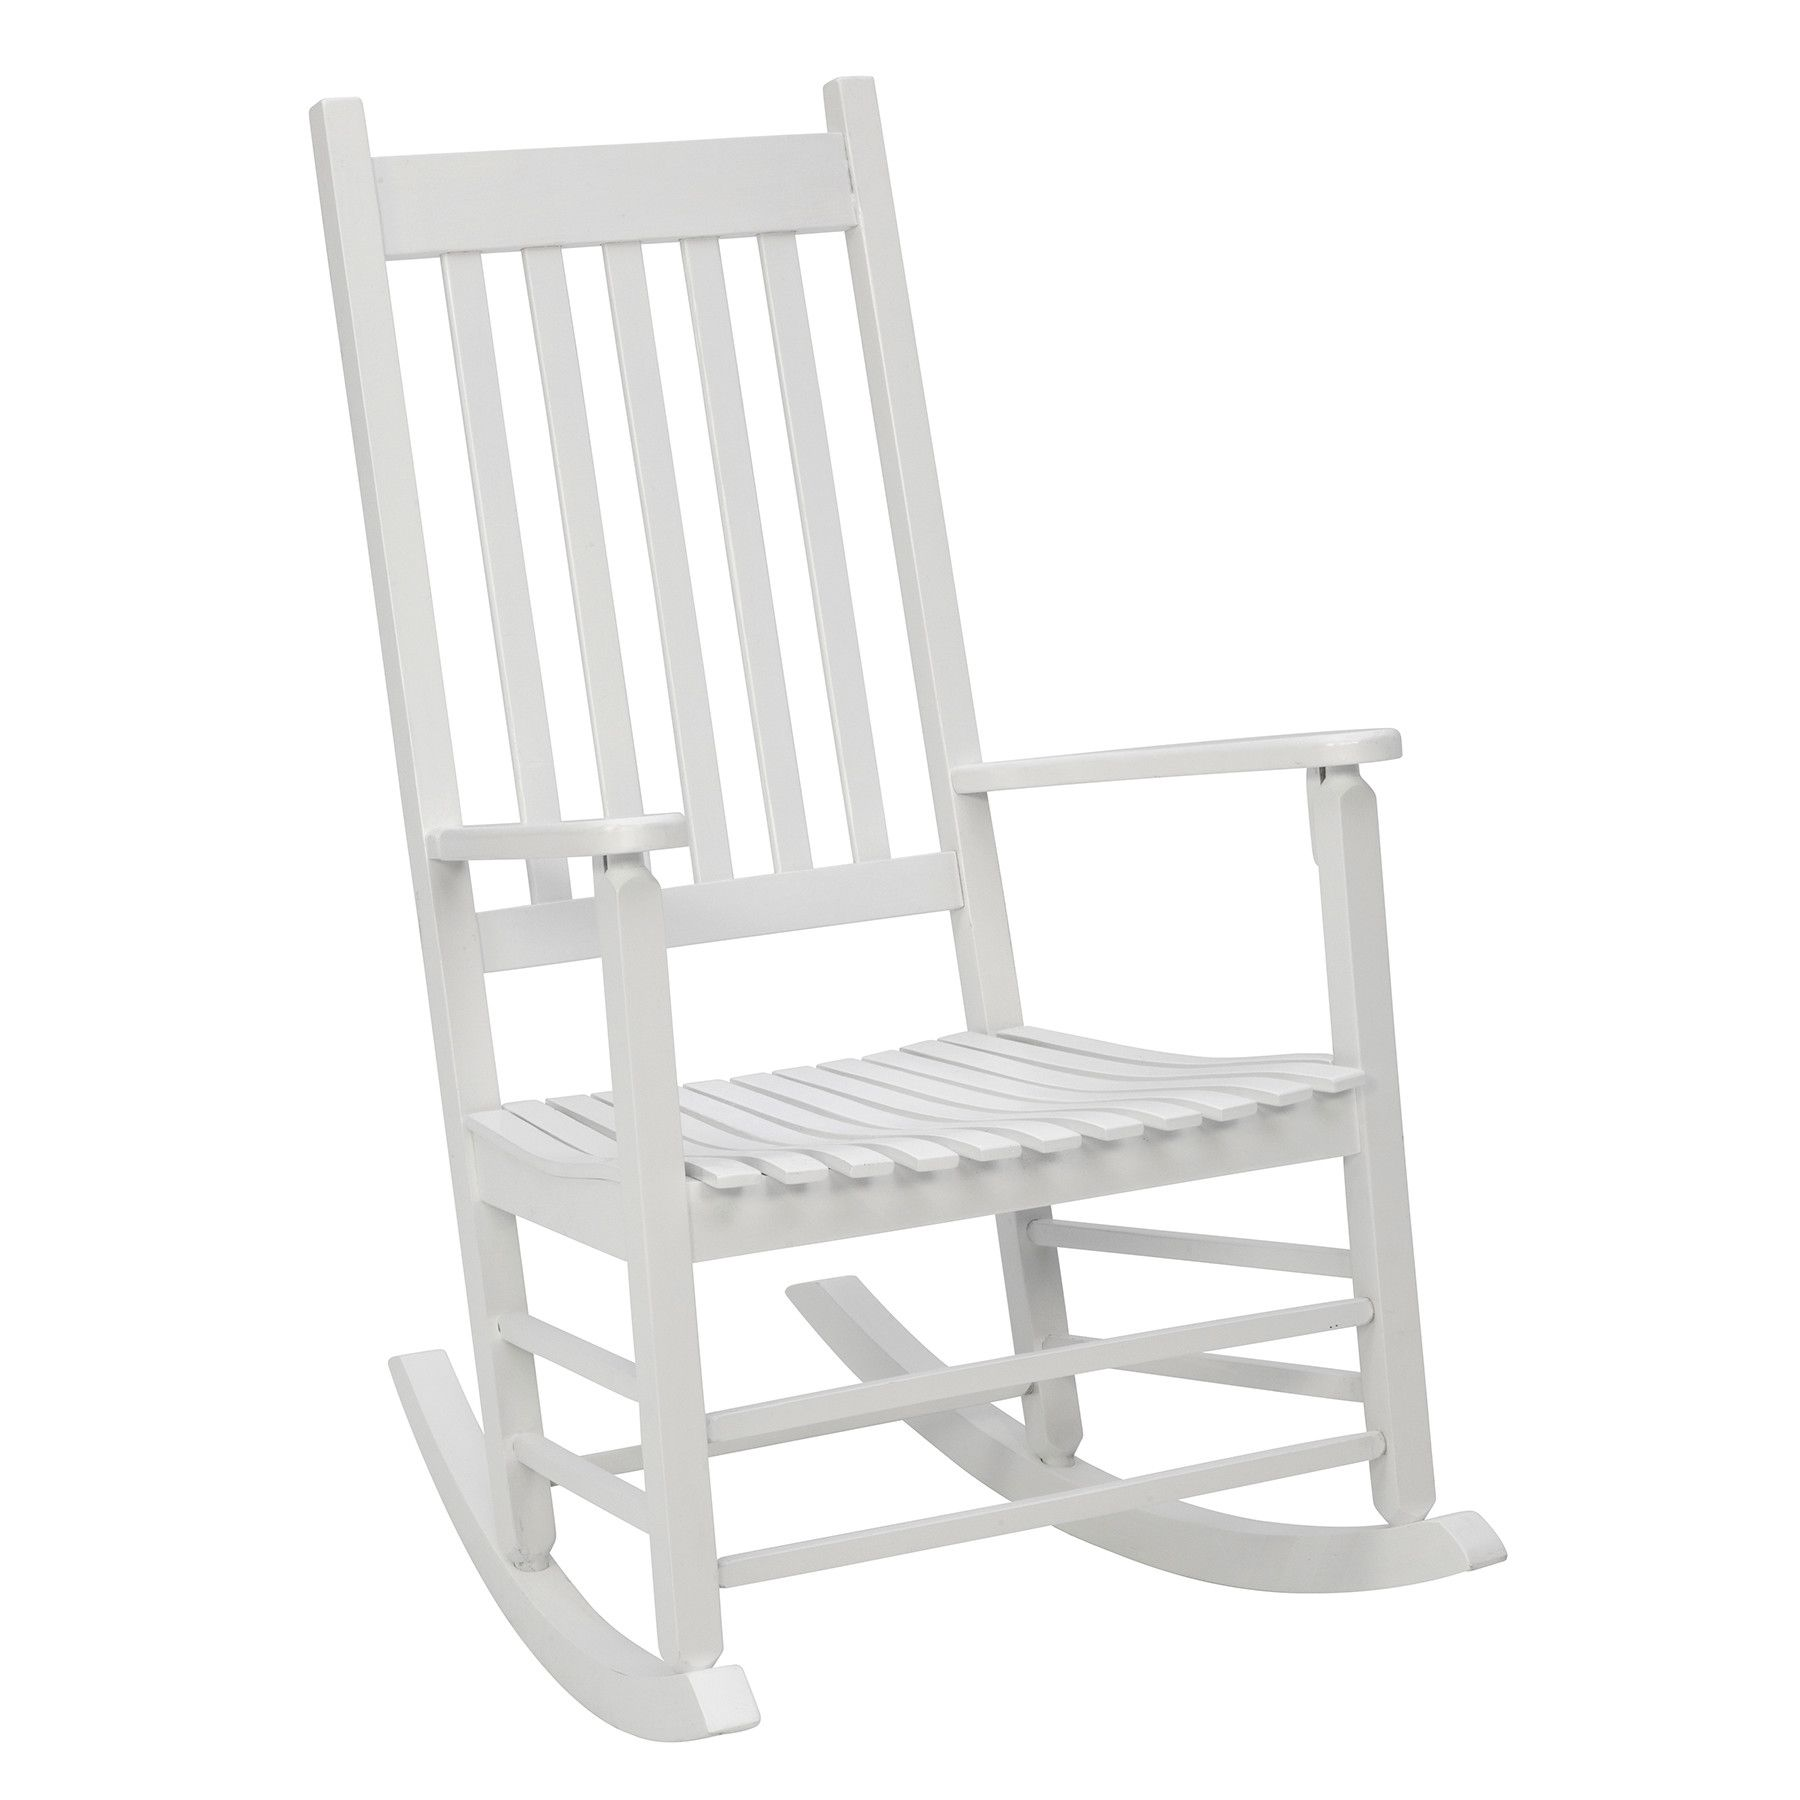 Exceptionnel Enjoy Warm Summer Breezes From Your Porch, Patio, Lawn Or Garden By Choosing  This Classic Jack Post White Mission Patio Rocker.